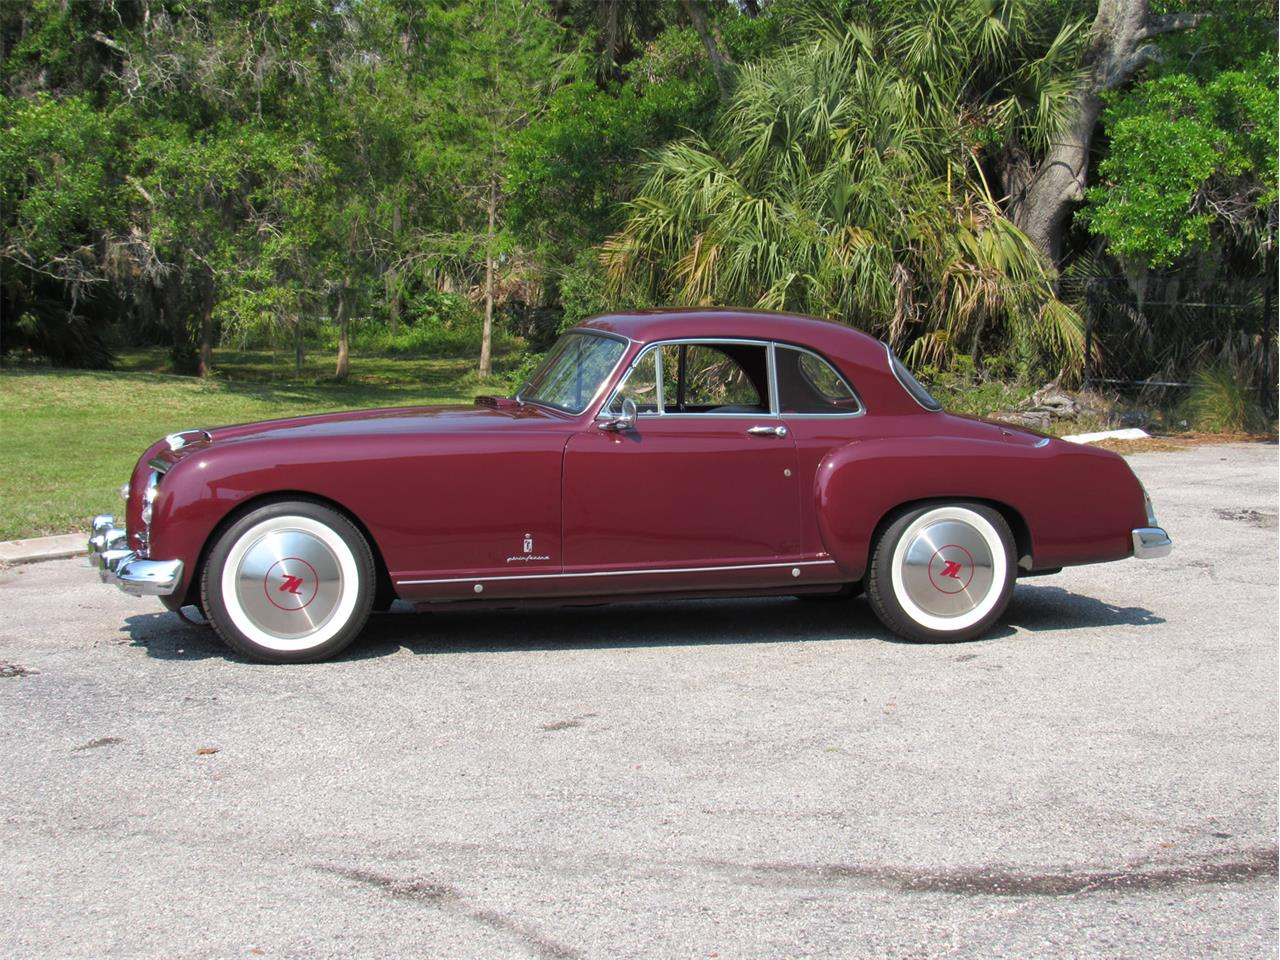 1953 Nash-Healey Lemans (CC-1080989) for sale in Sarasota, Florida